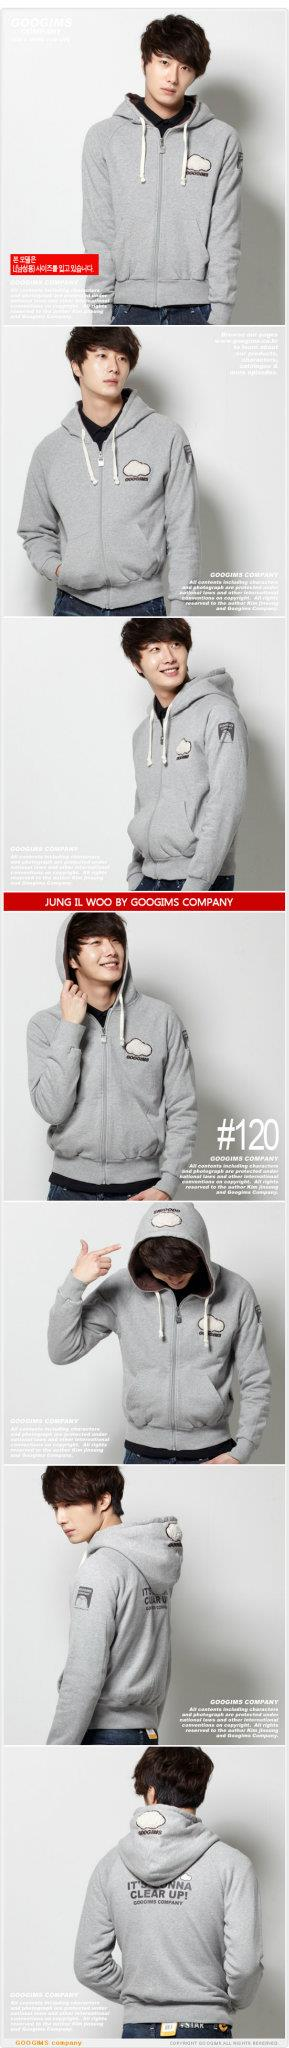 2011 10 Jung II-woo for Googims. Part 100049